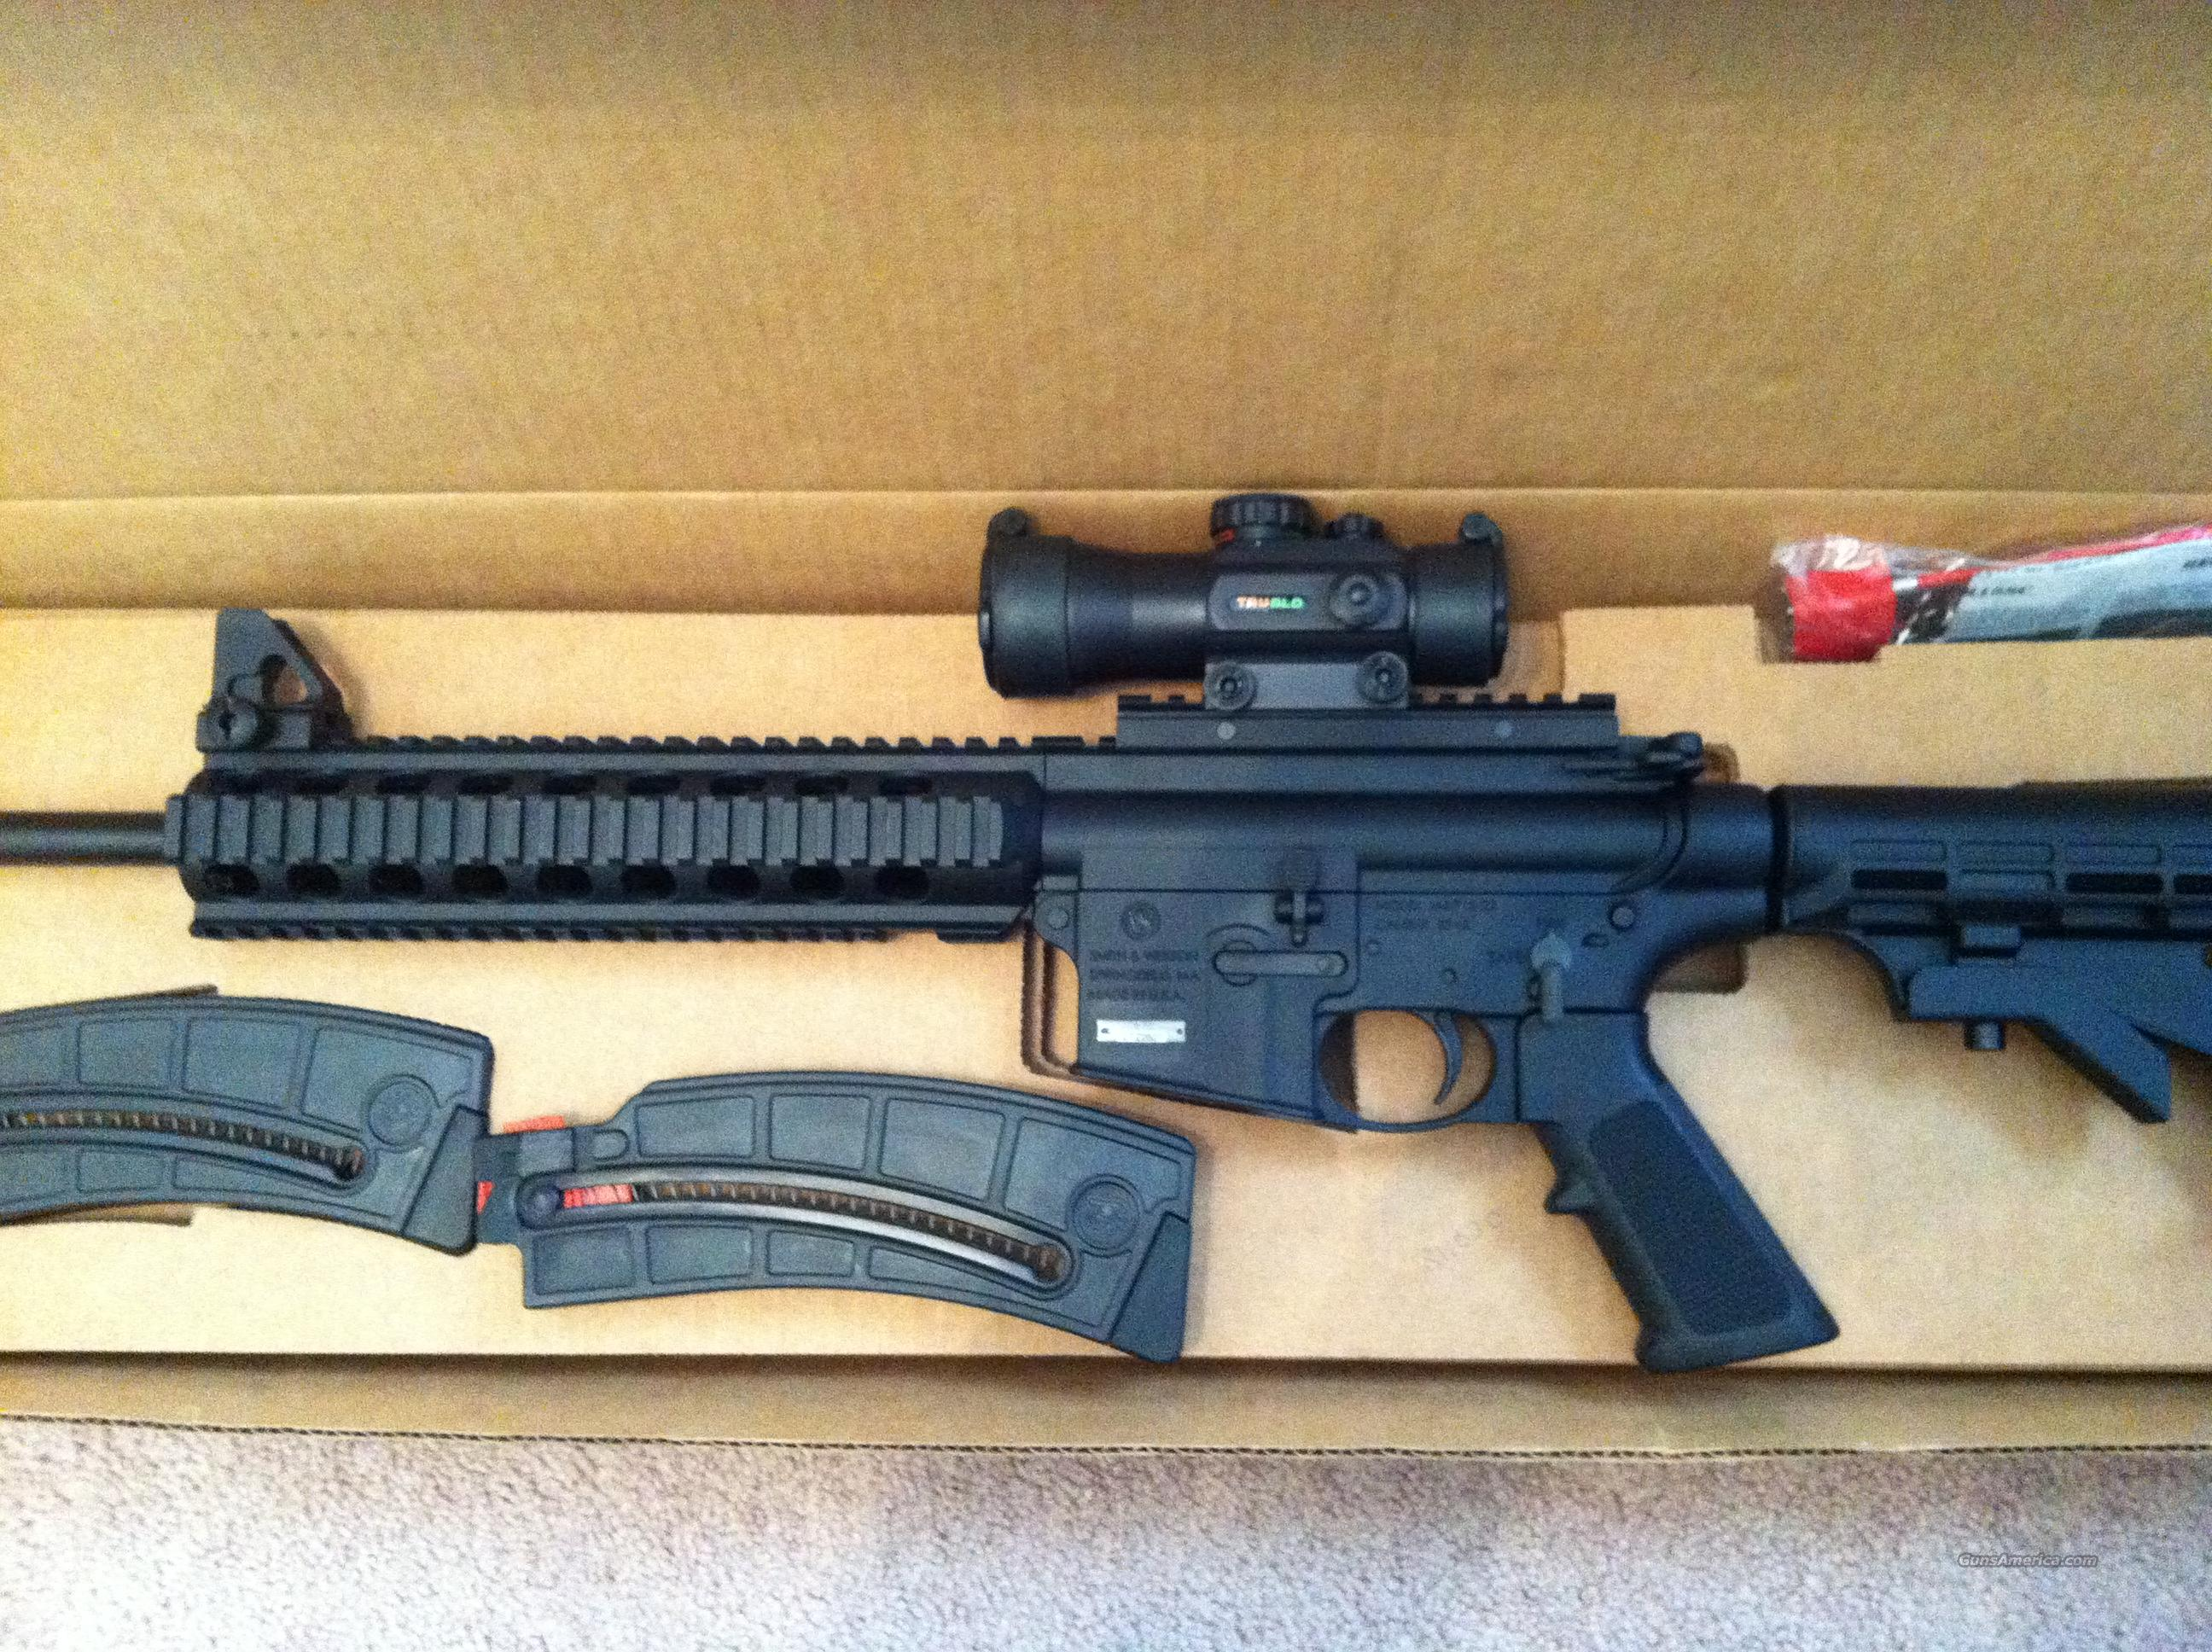 Smith and Wesson M&P 15-22 Rifle .22 LR  Guns > Rifles > Smith & Wesson Rifles > M&P